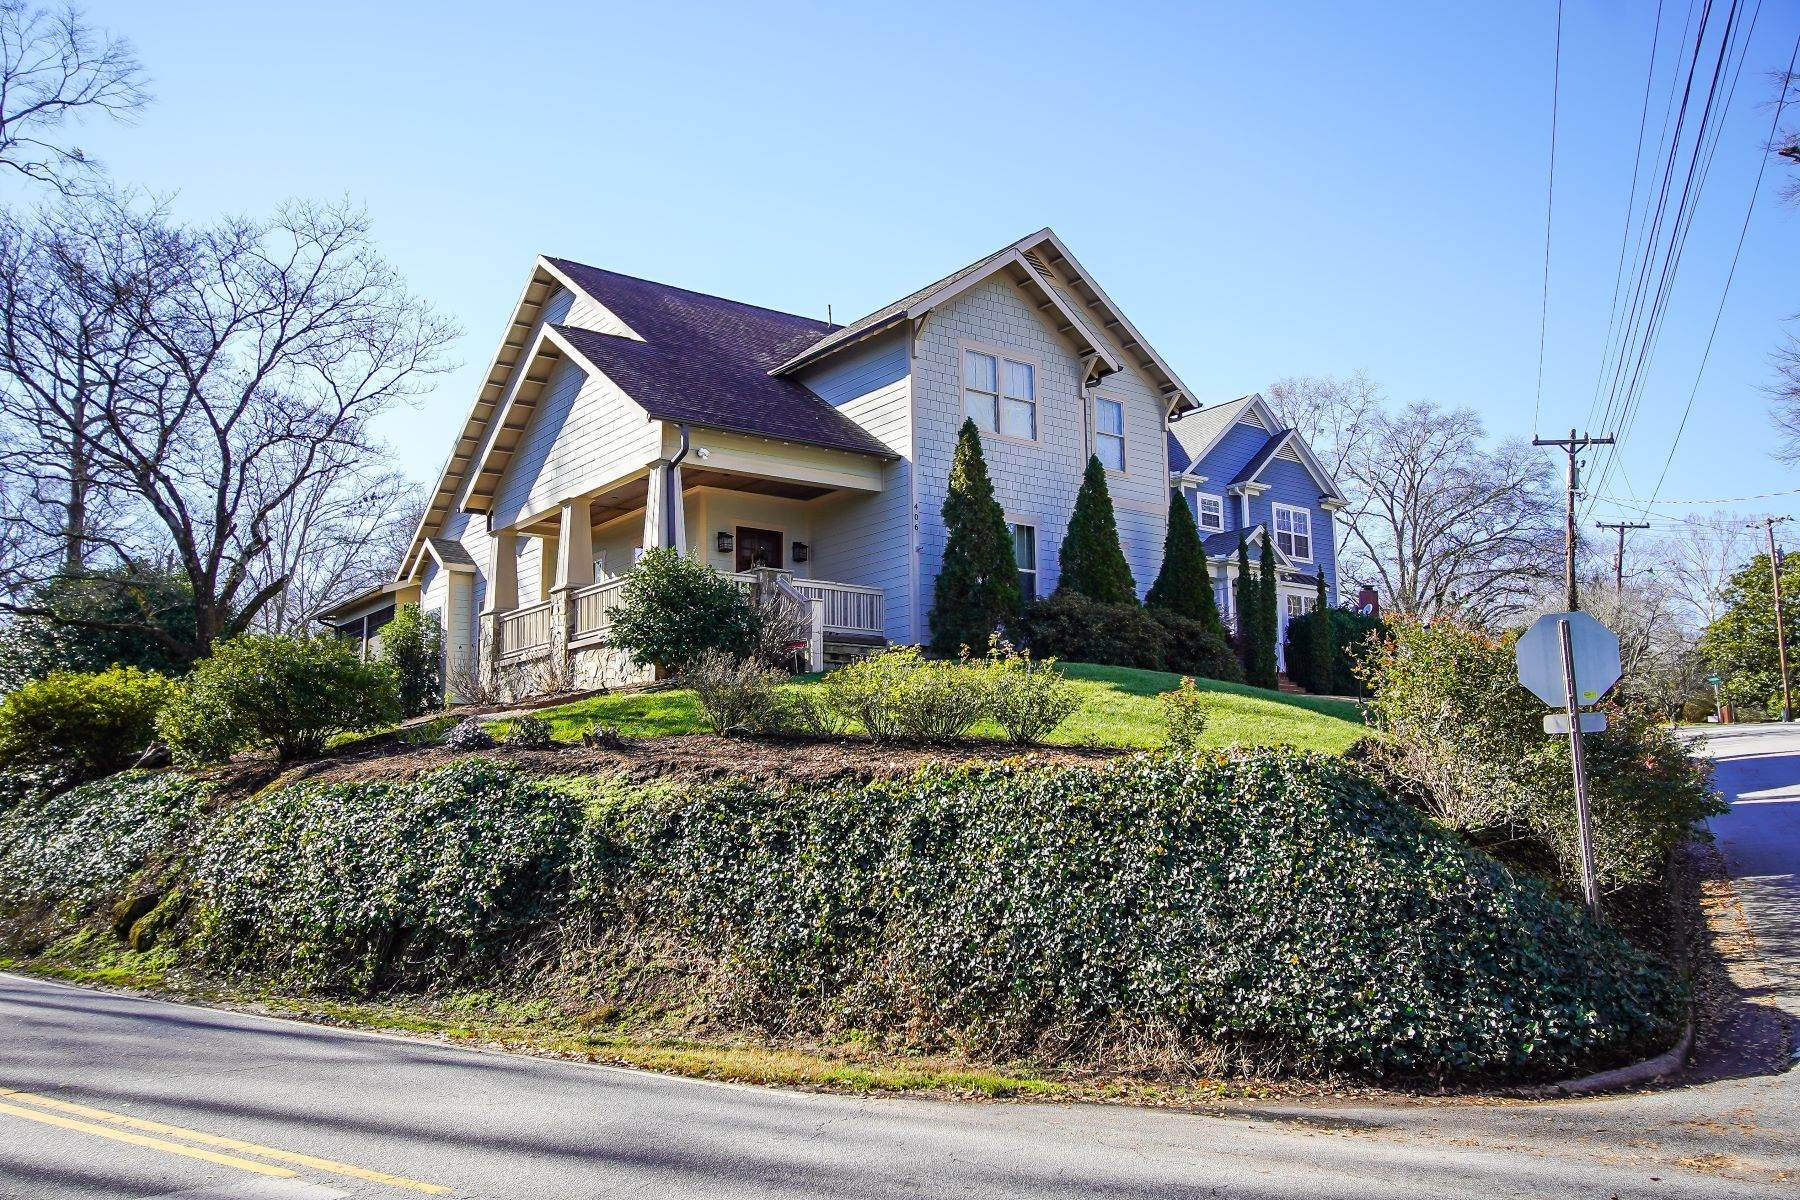 Property for Sale at 406 East Hillcrest Drive, Greenville, SC 29609 Greenville, SC 29609